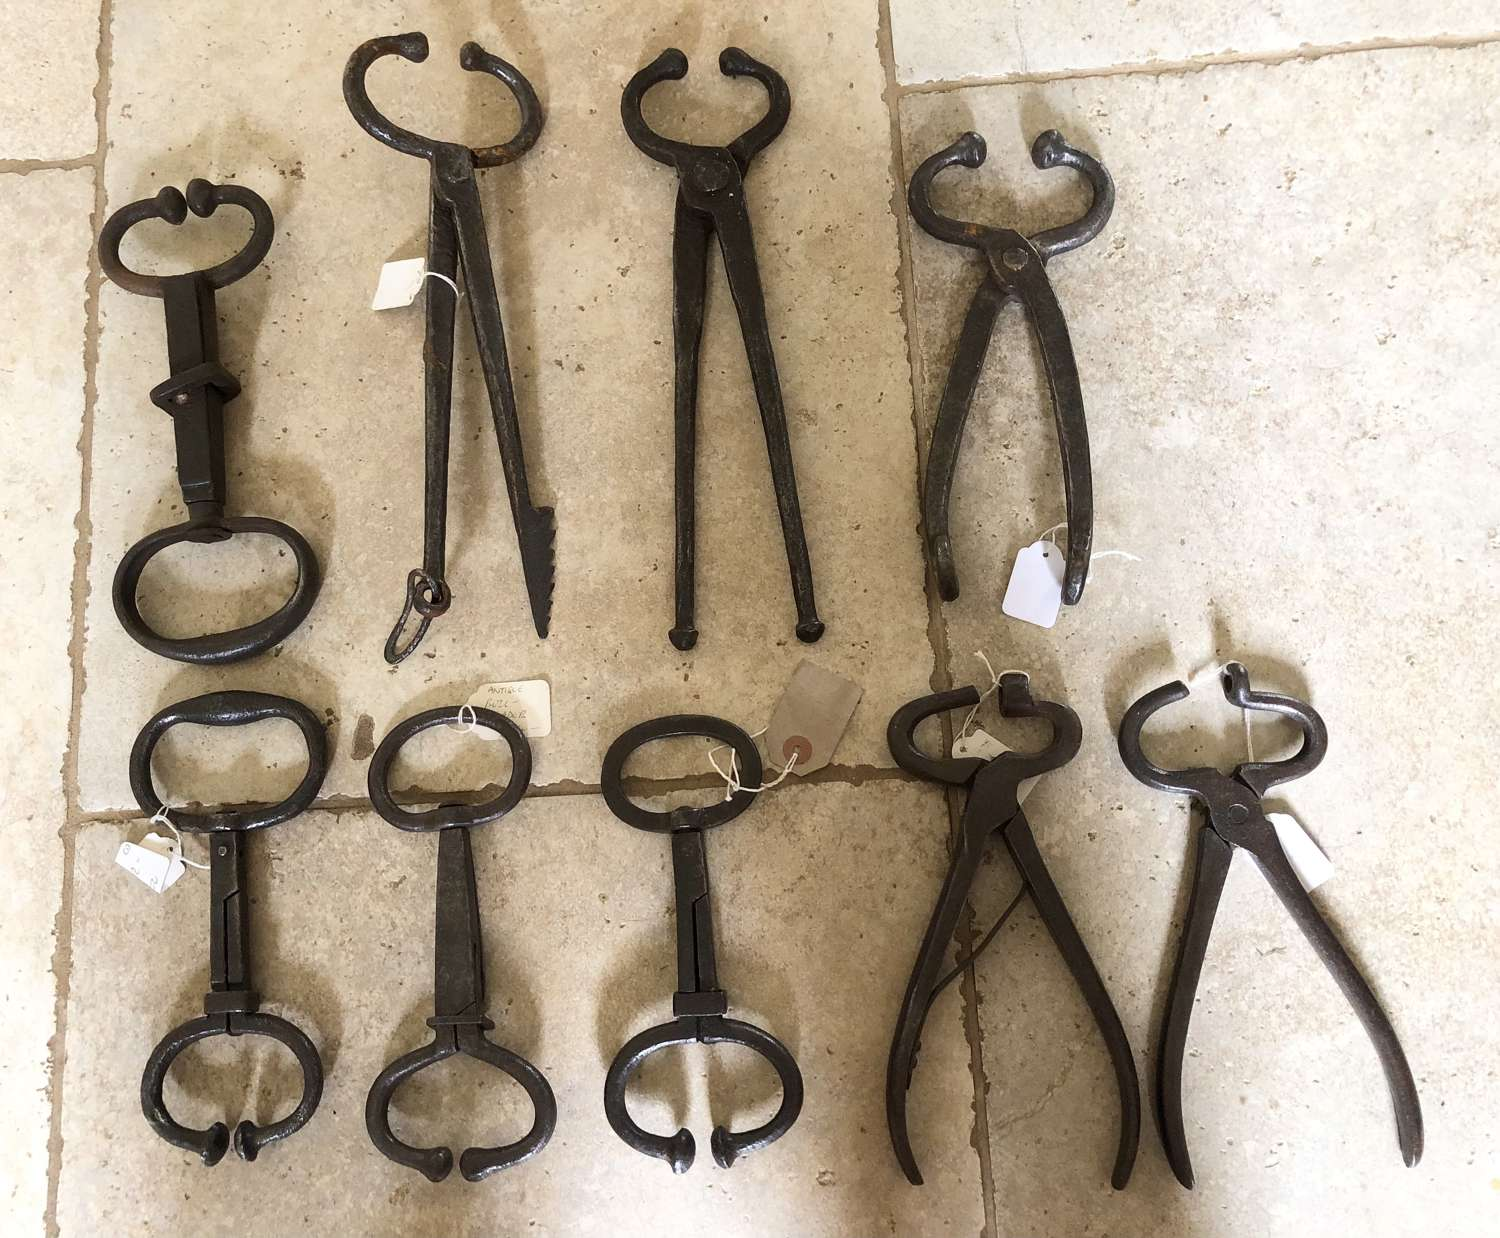 Bull nose Pliers and Bull Leaders